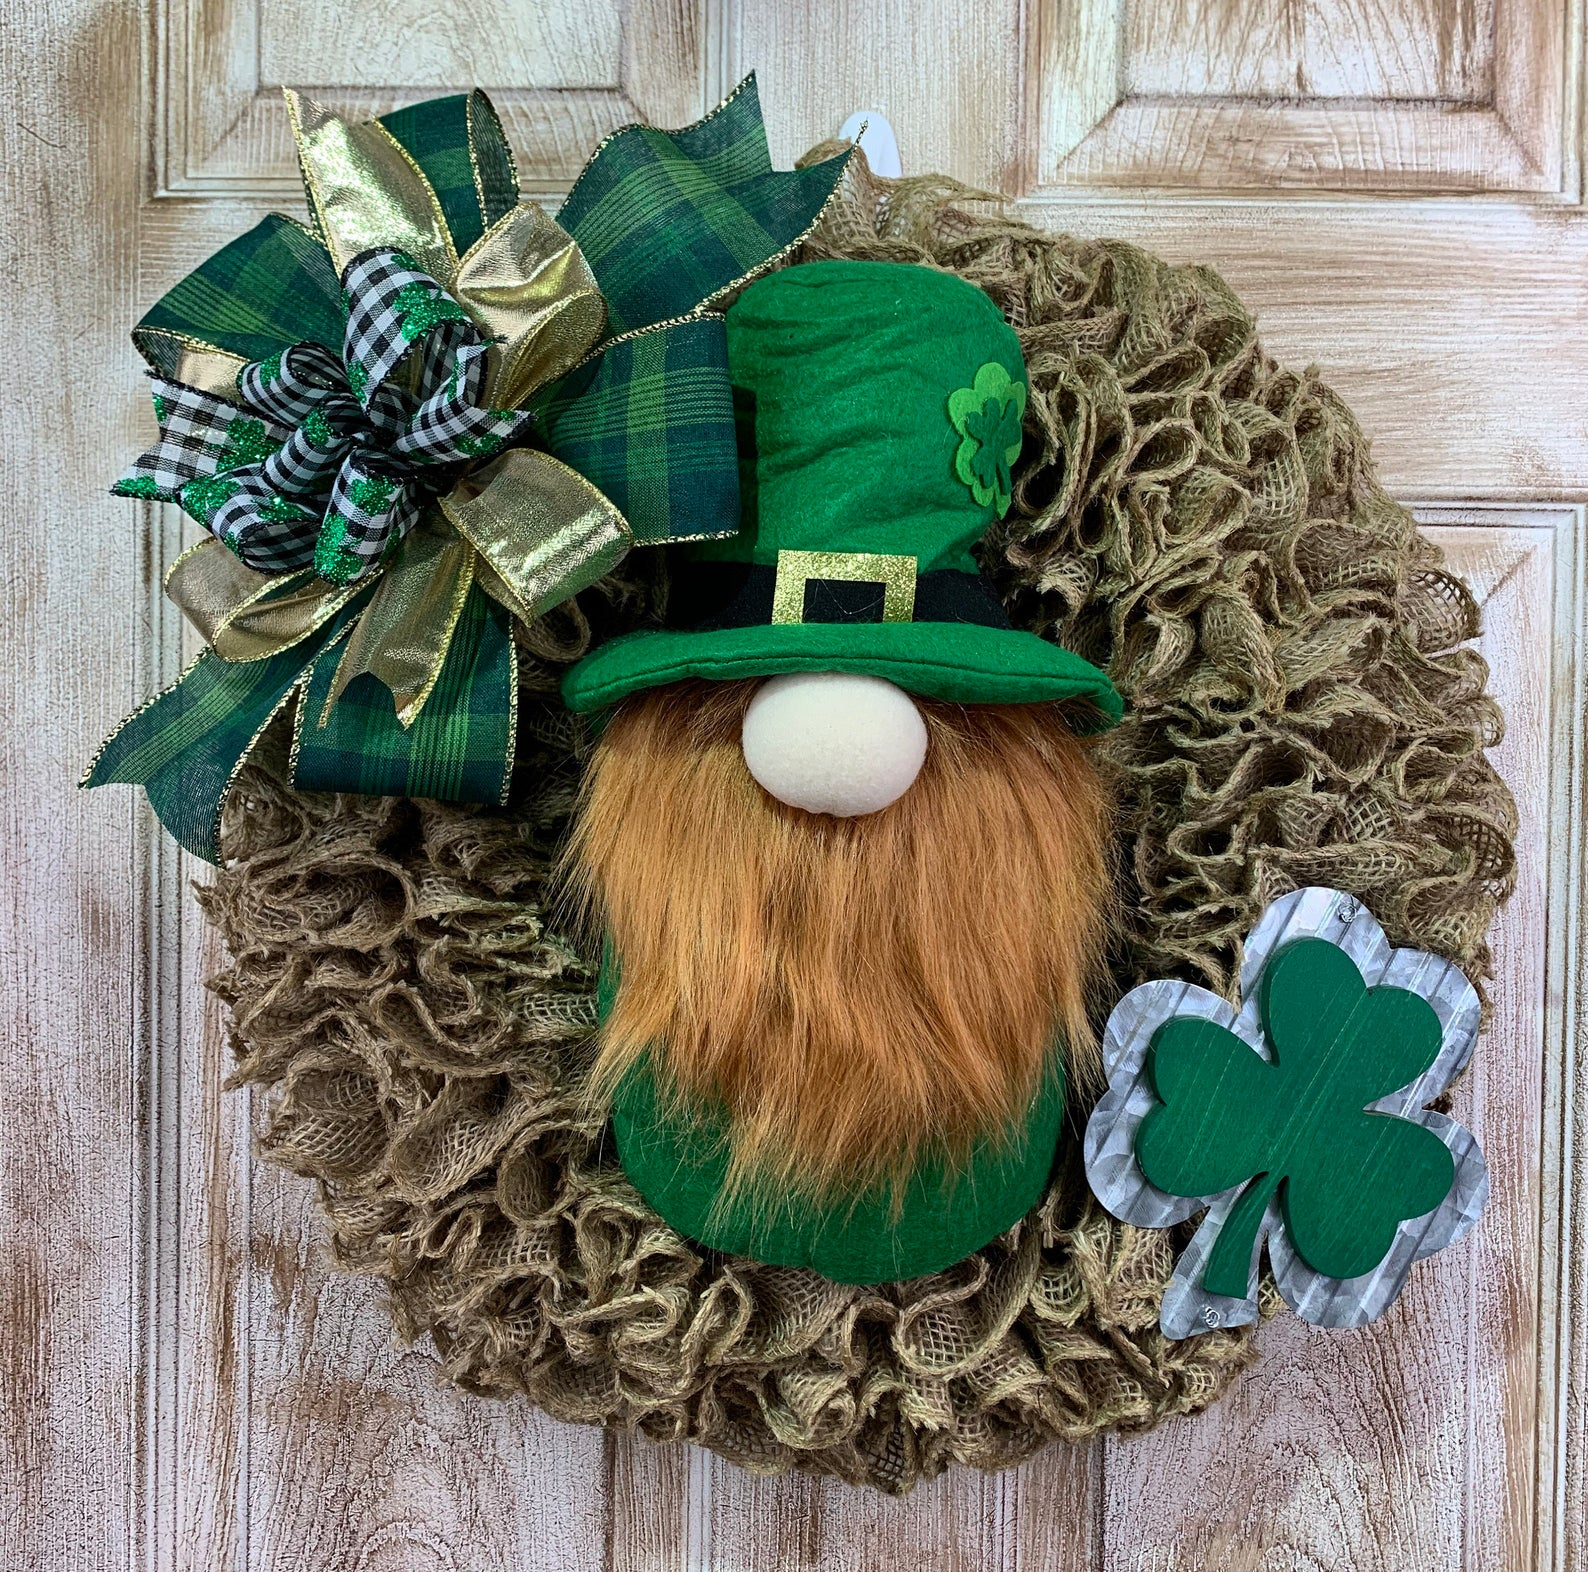 St. Patrick & # 39; s Day wreath with leprechaun and clover